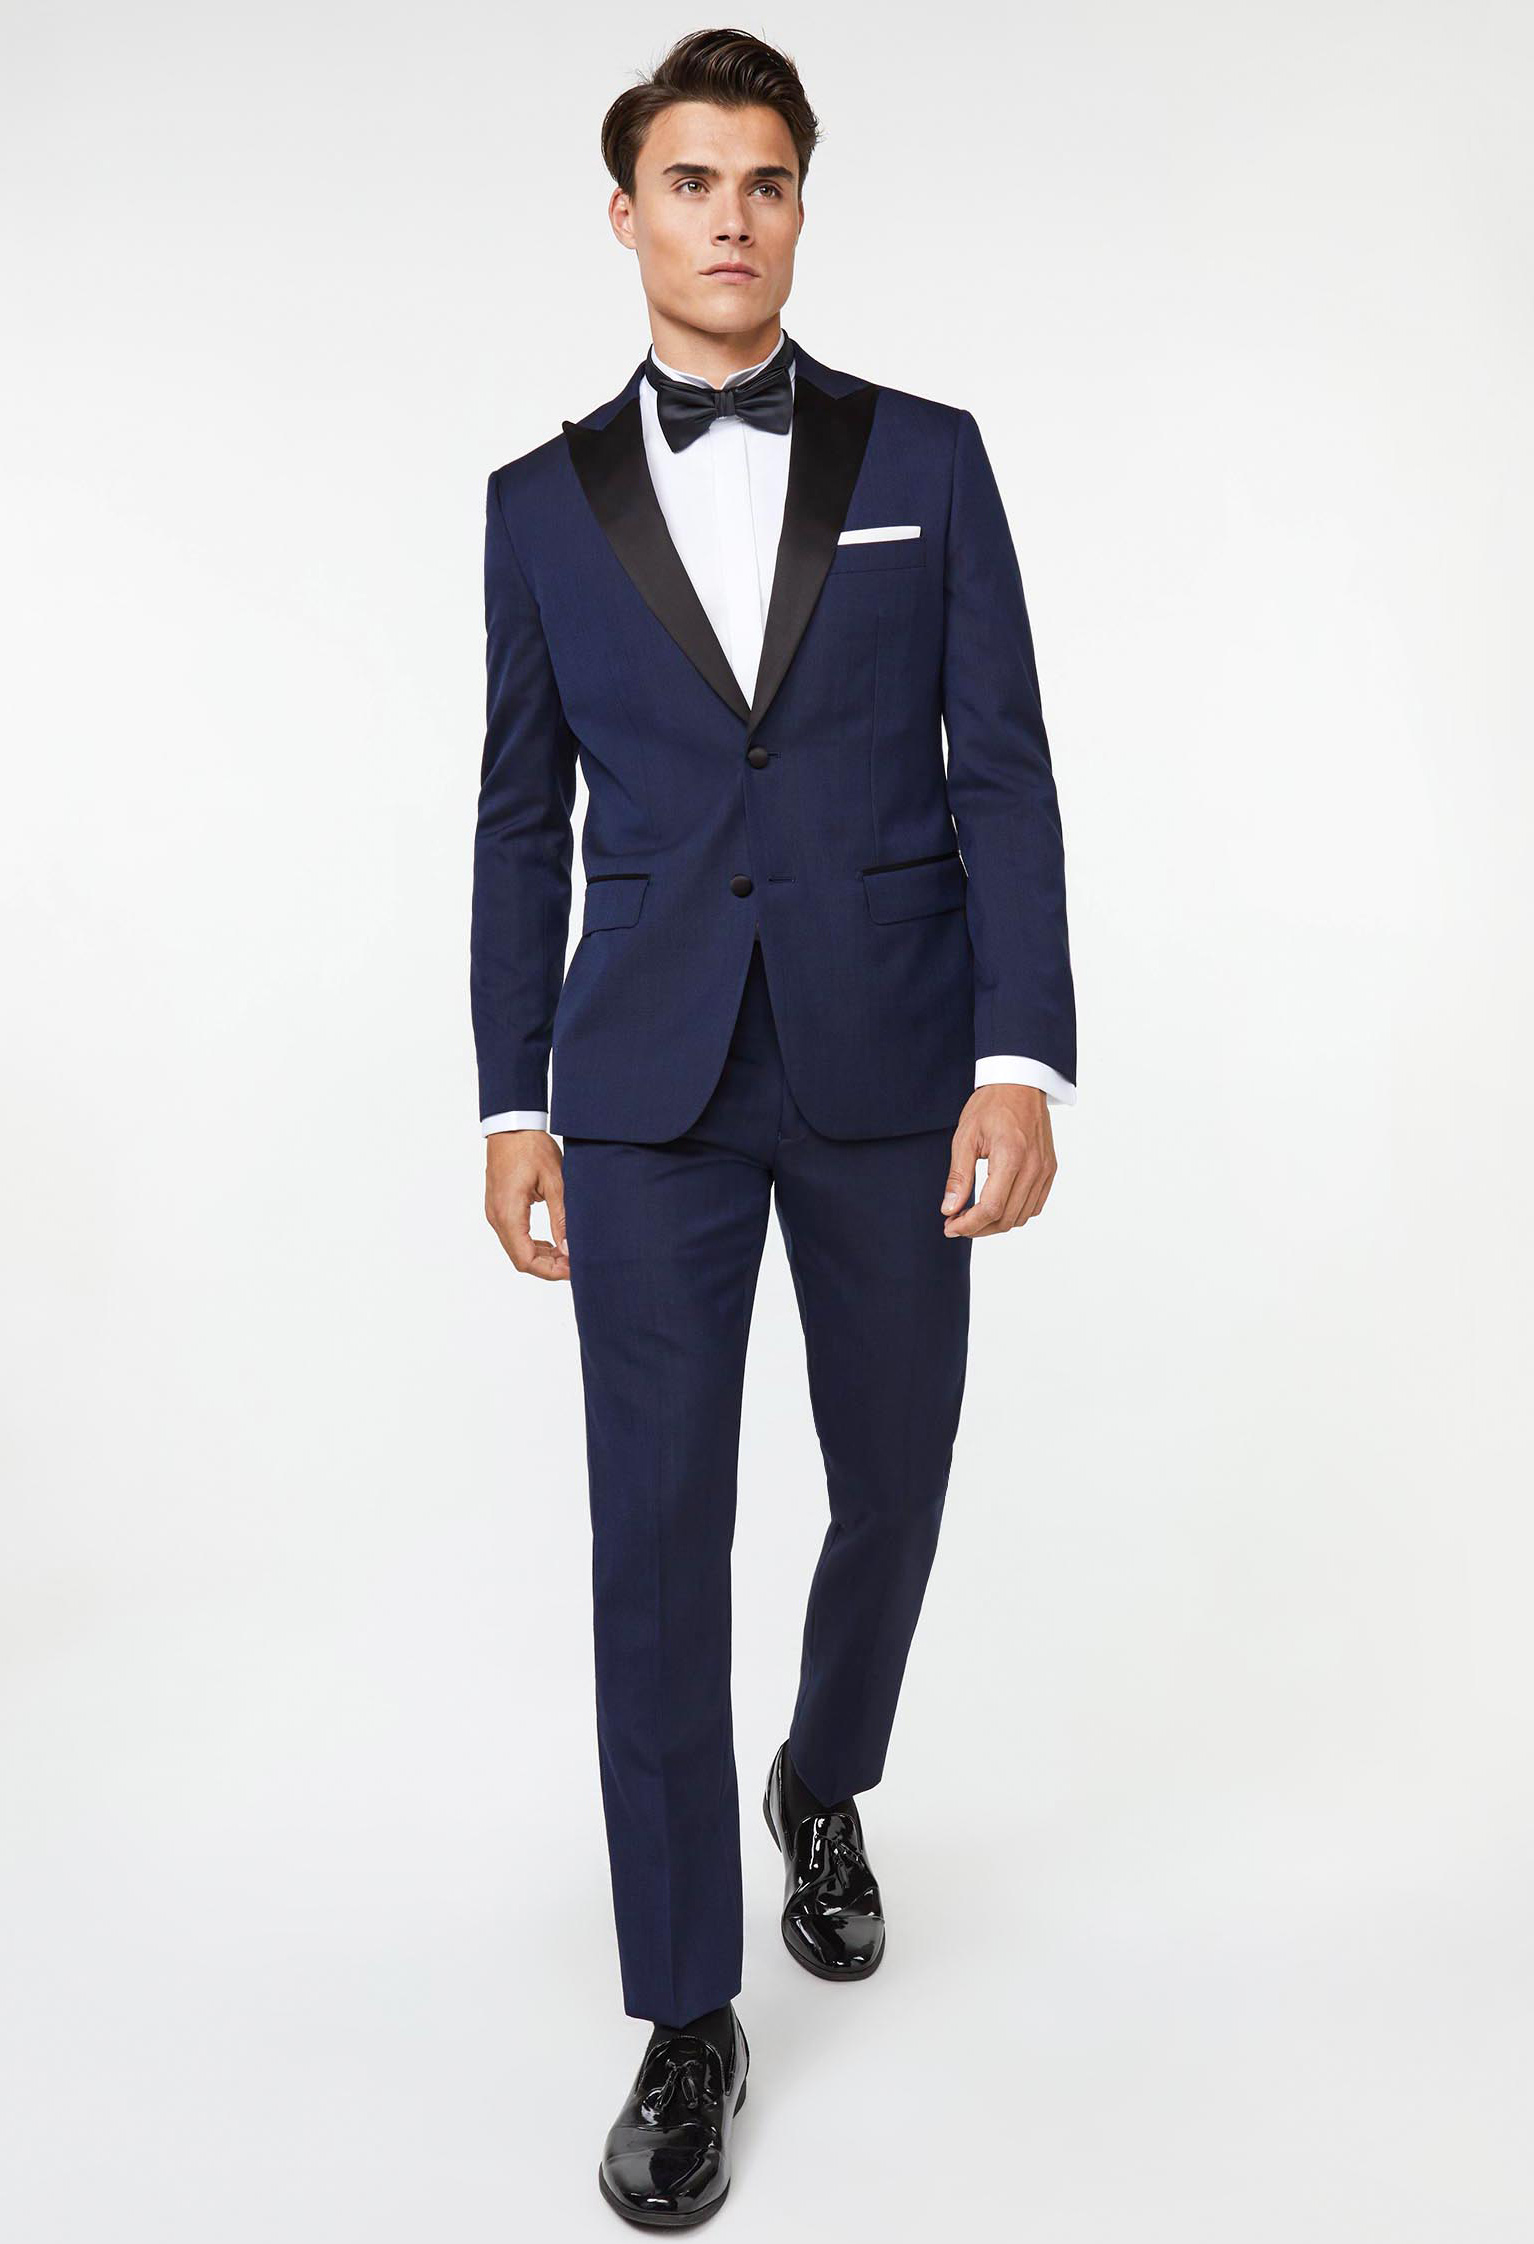 affordable tuxedo made of polyester